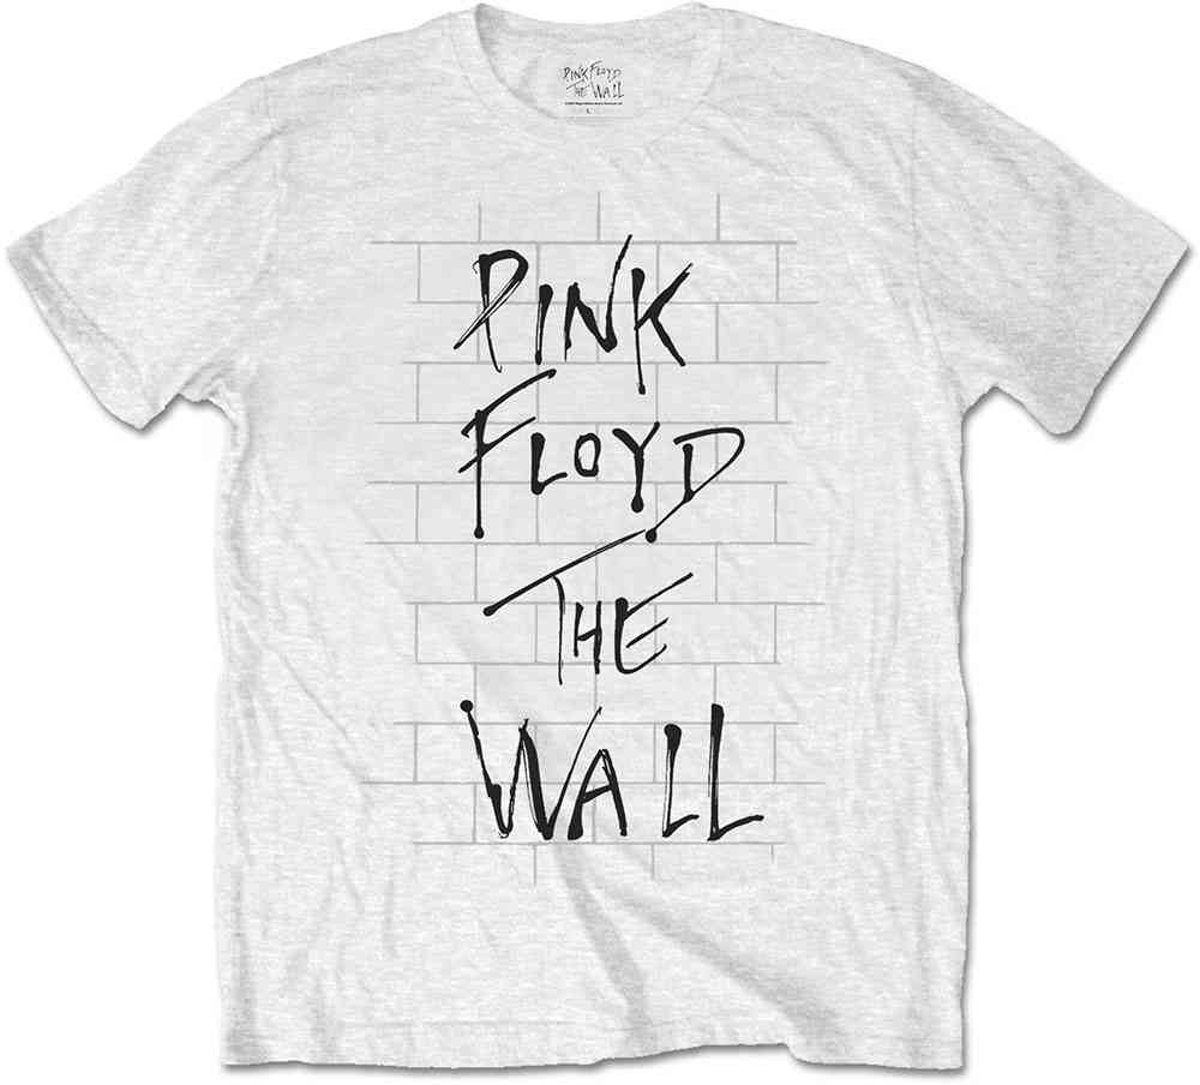 Pink Floyd - The Wall & Logo heren unisex T-shirt wit - S